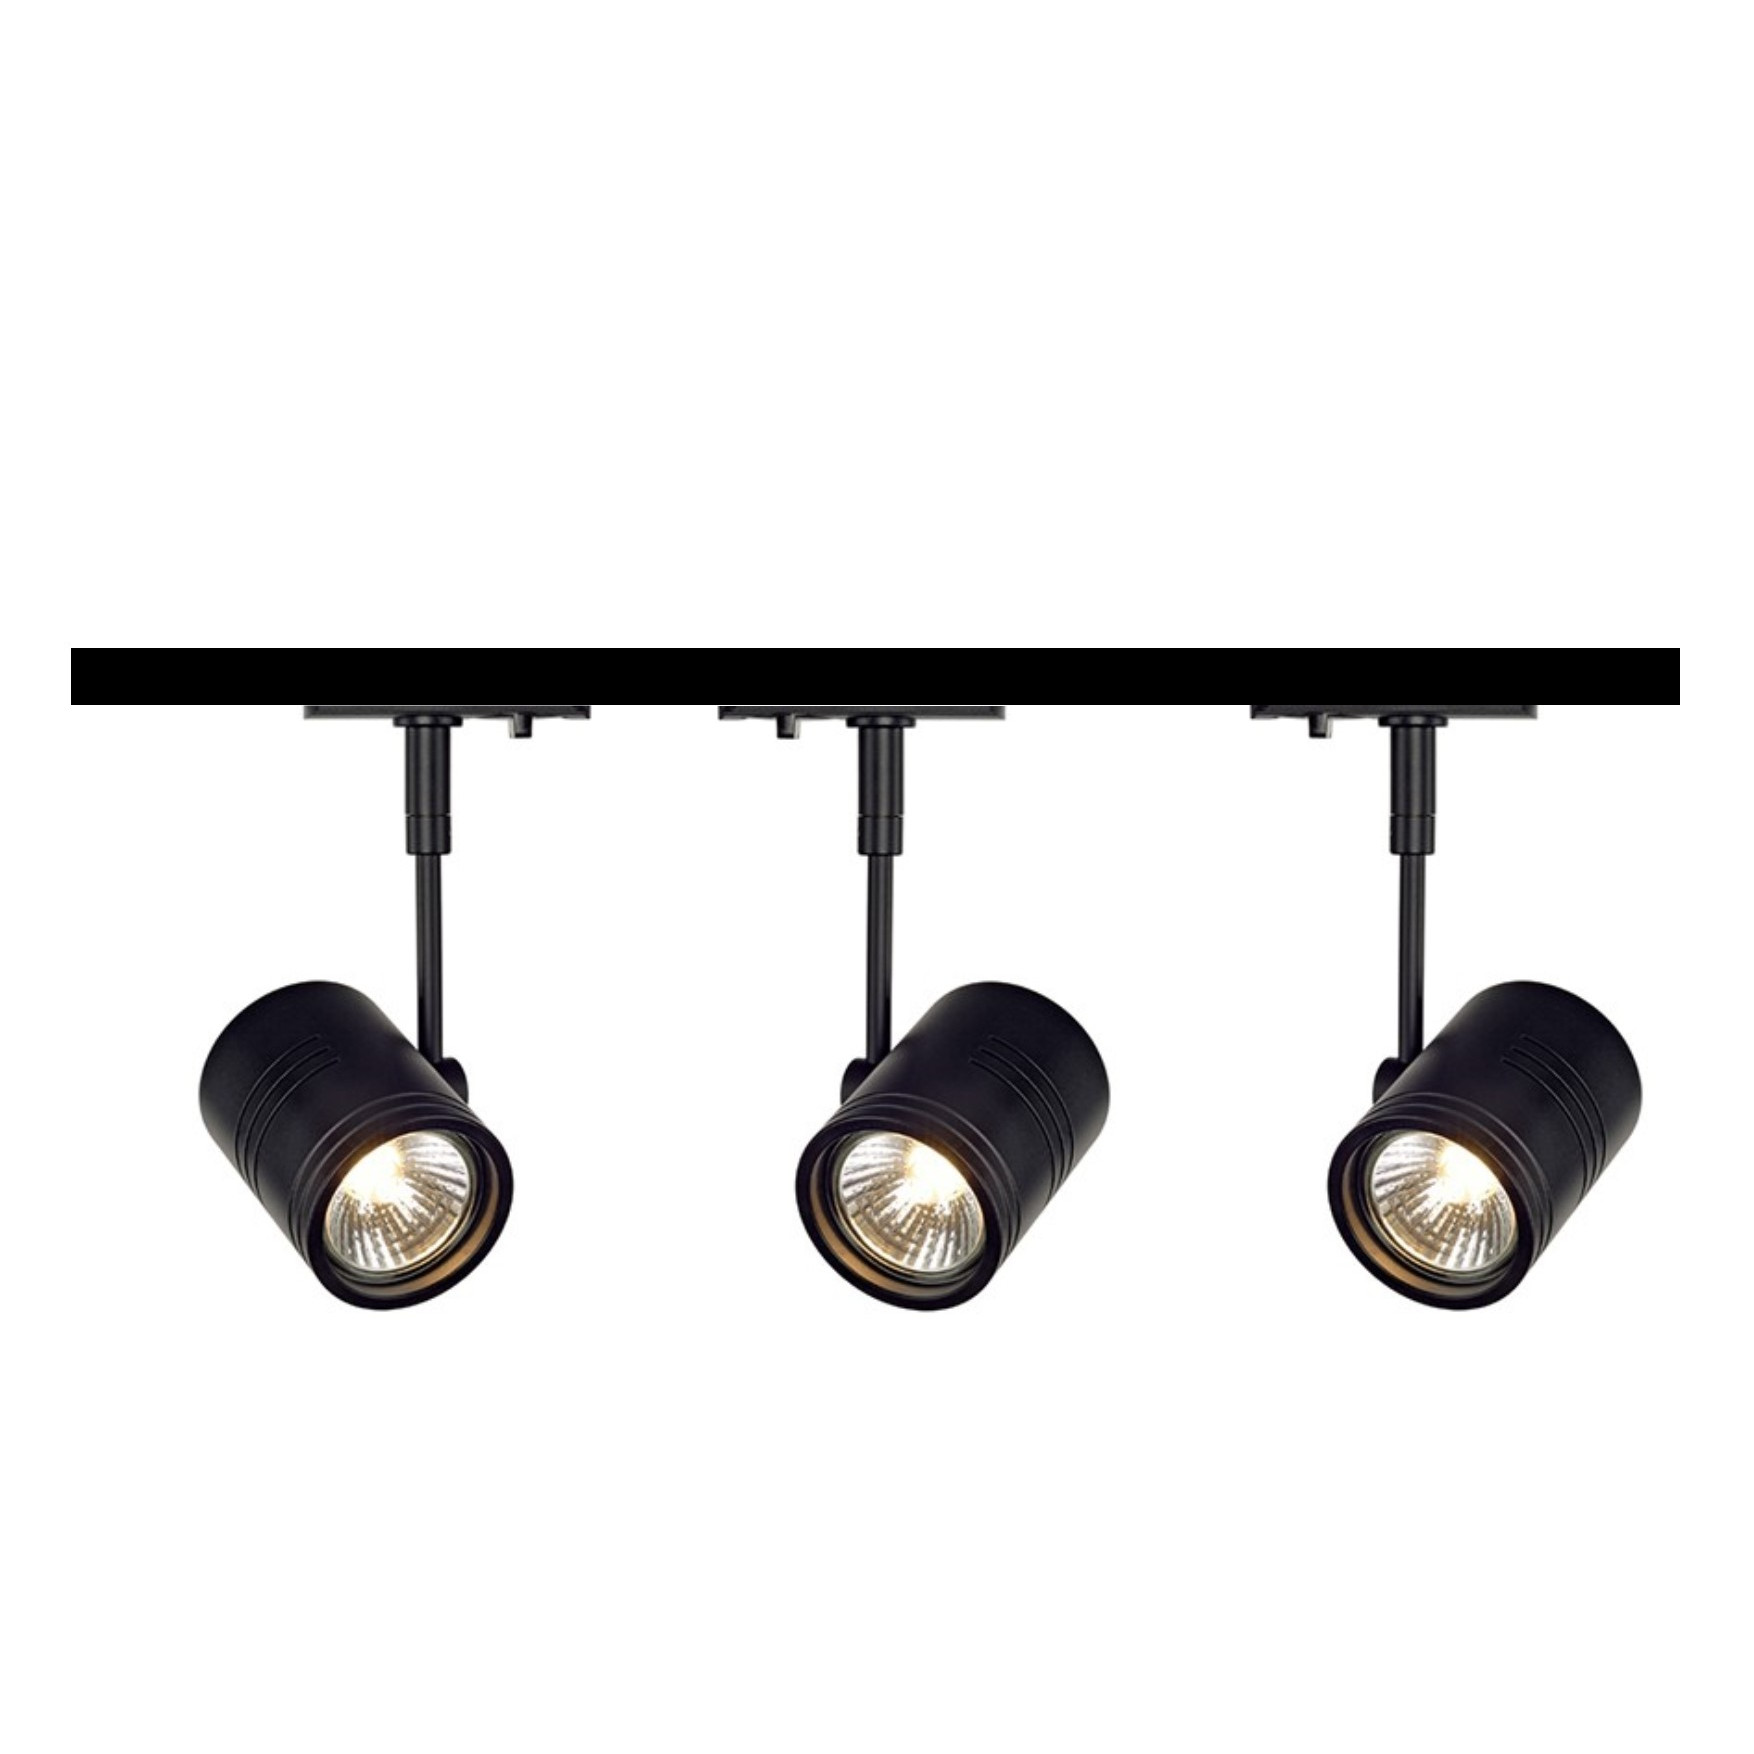 Black Track Lighting Uk: Black Track Lighting Kits